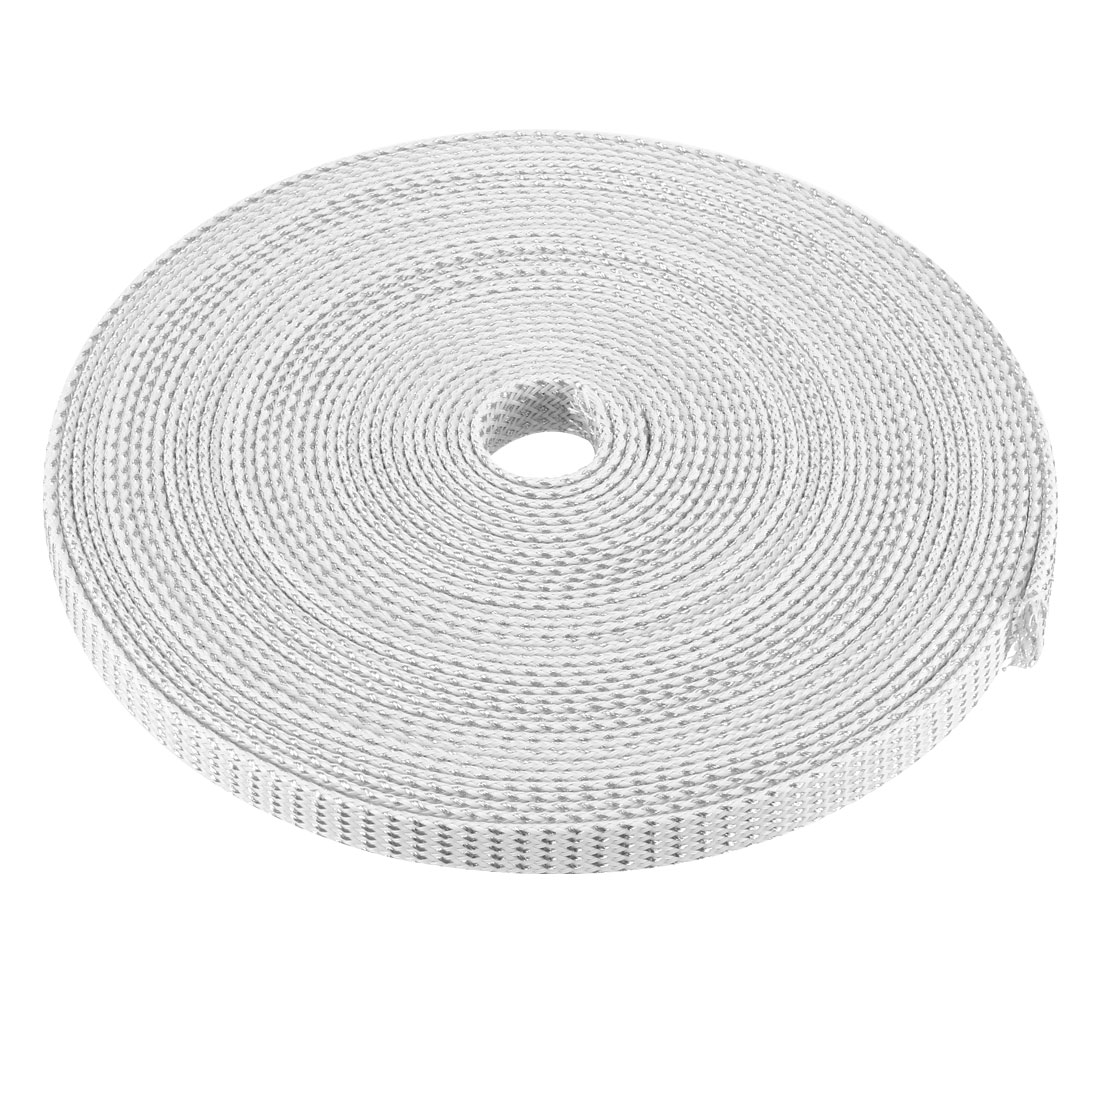 PET Braided Sleeving 32.8 Feet 10m Expandable Cable Wrap 12mm Diameter Wire Sheath Silver White